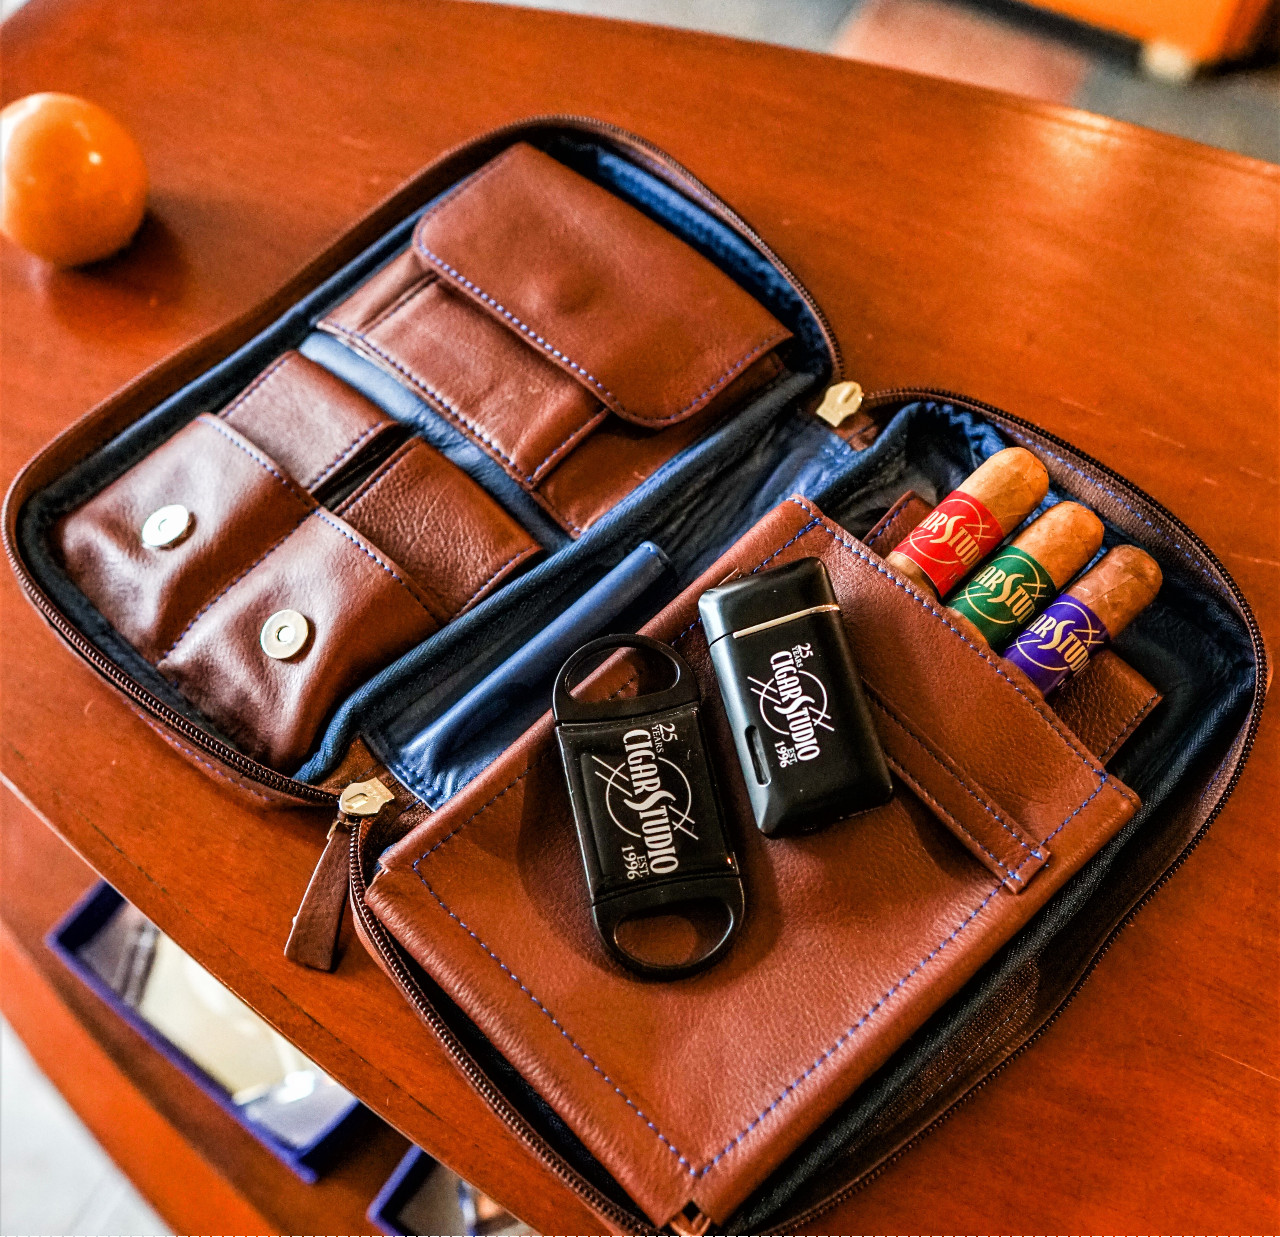 Cigar Studio Package 20 in beautiful Antique Leather or Lazy Blue & Brown